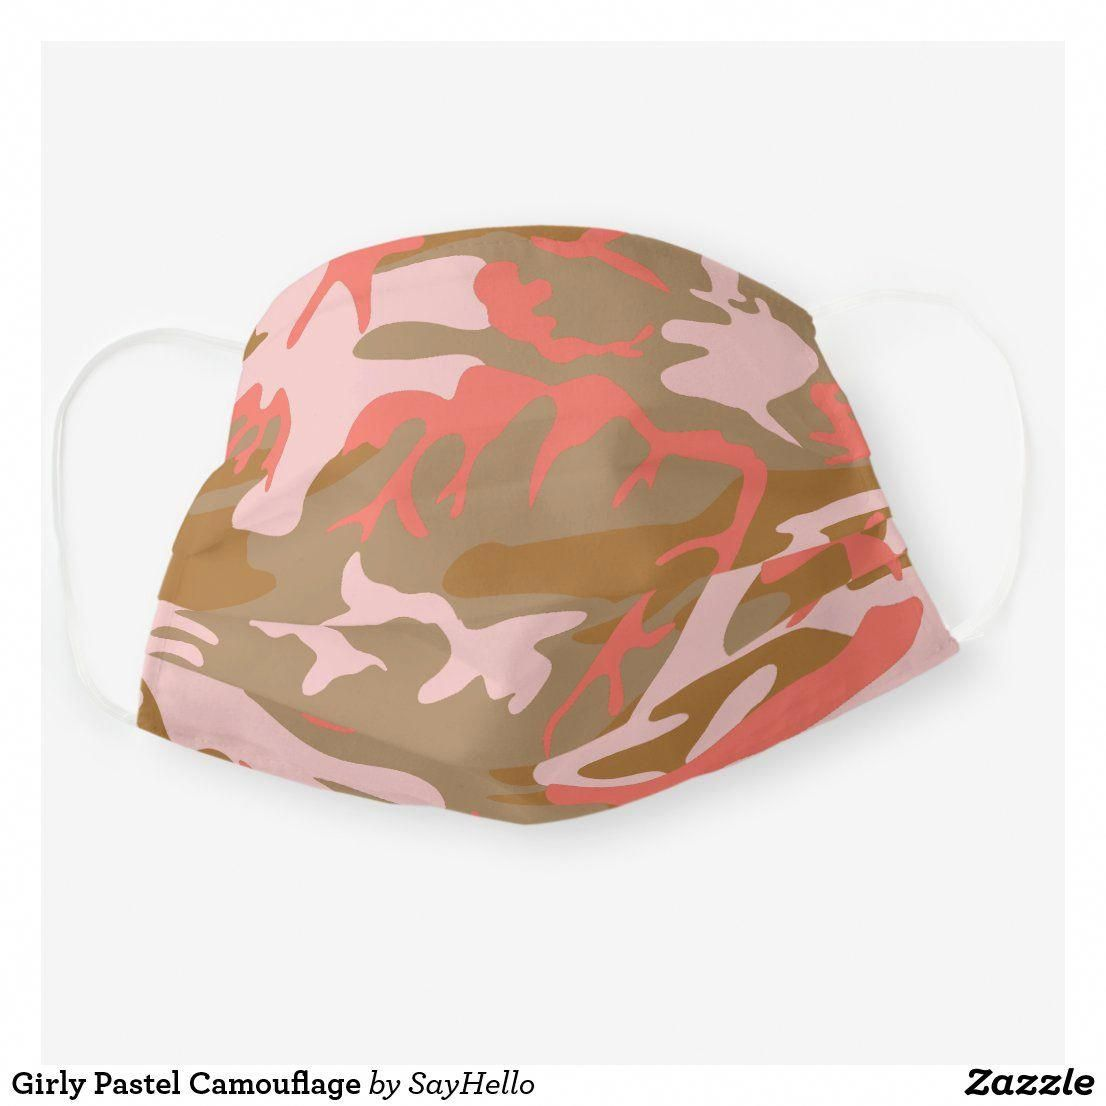 N95 Face Mask Jeddah In 2020 Face Mask Girly Camouflage